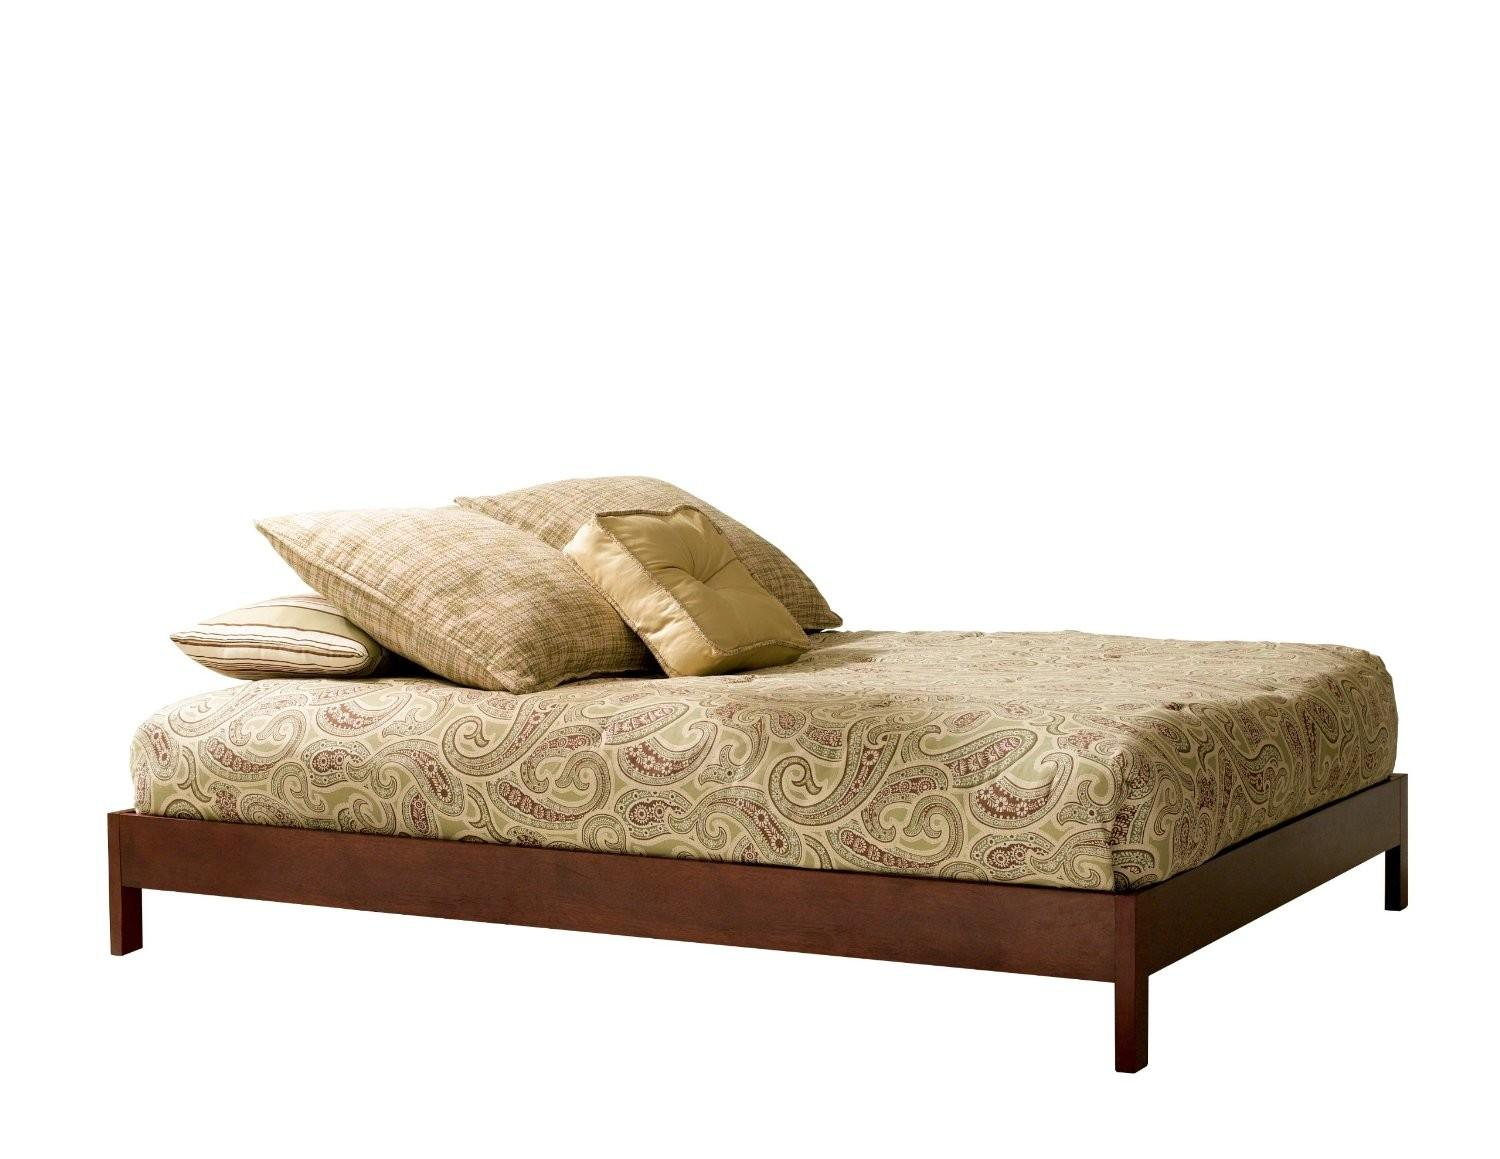 Queen Bed Headboard Latest Upholstered Frame